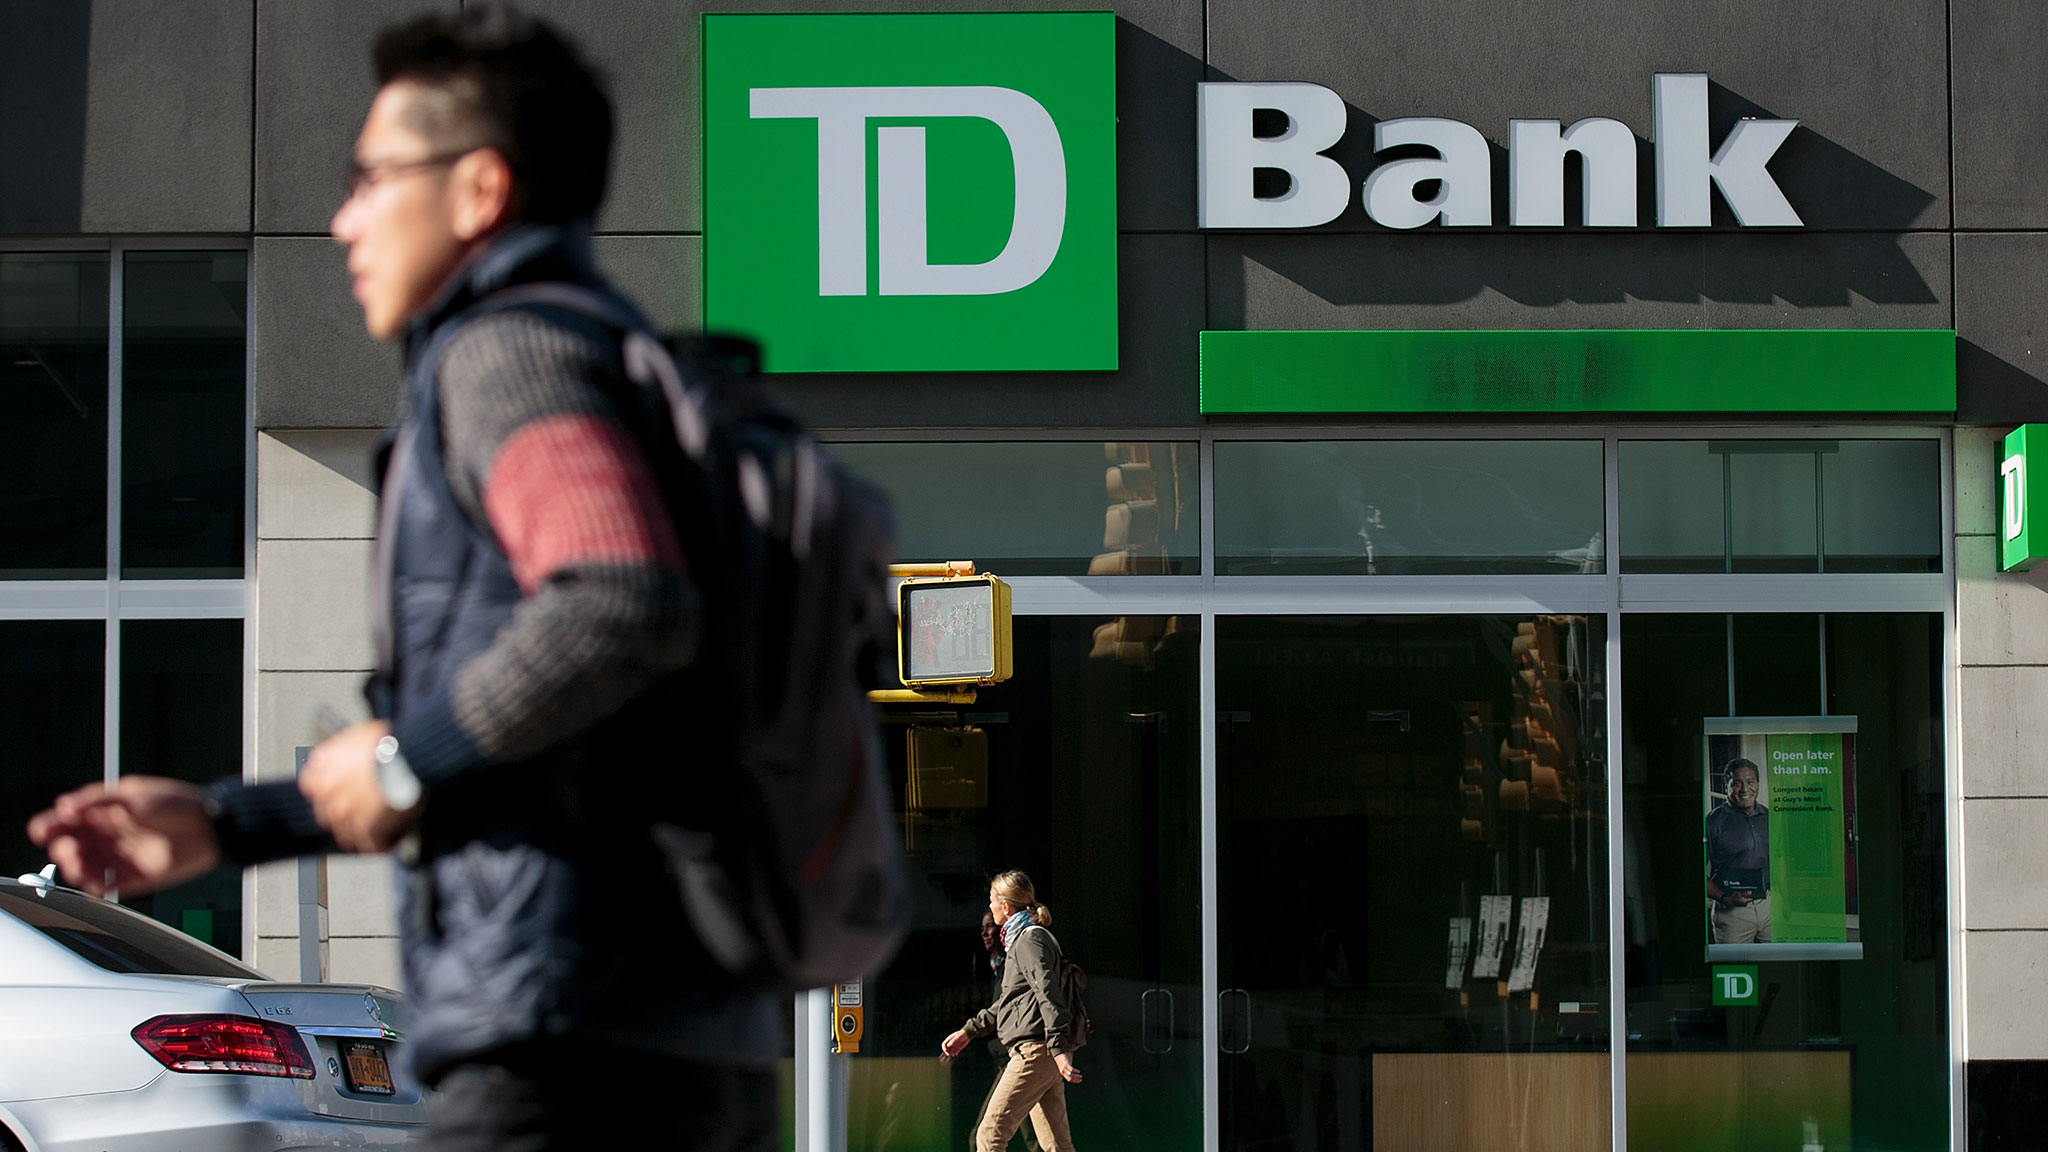 TD Bank under pressure over sales tactics claims